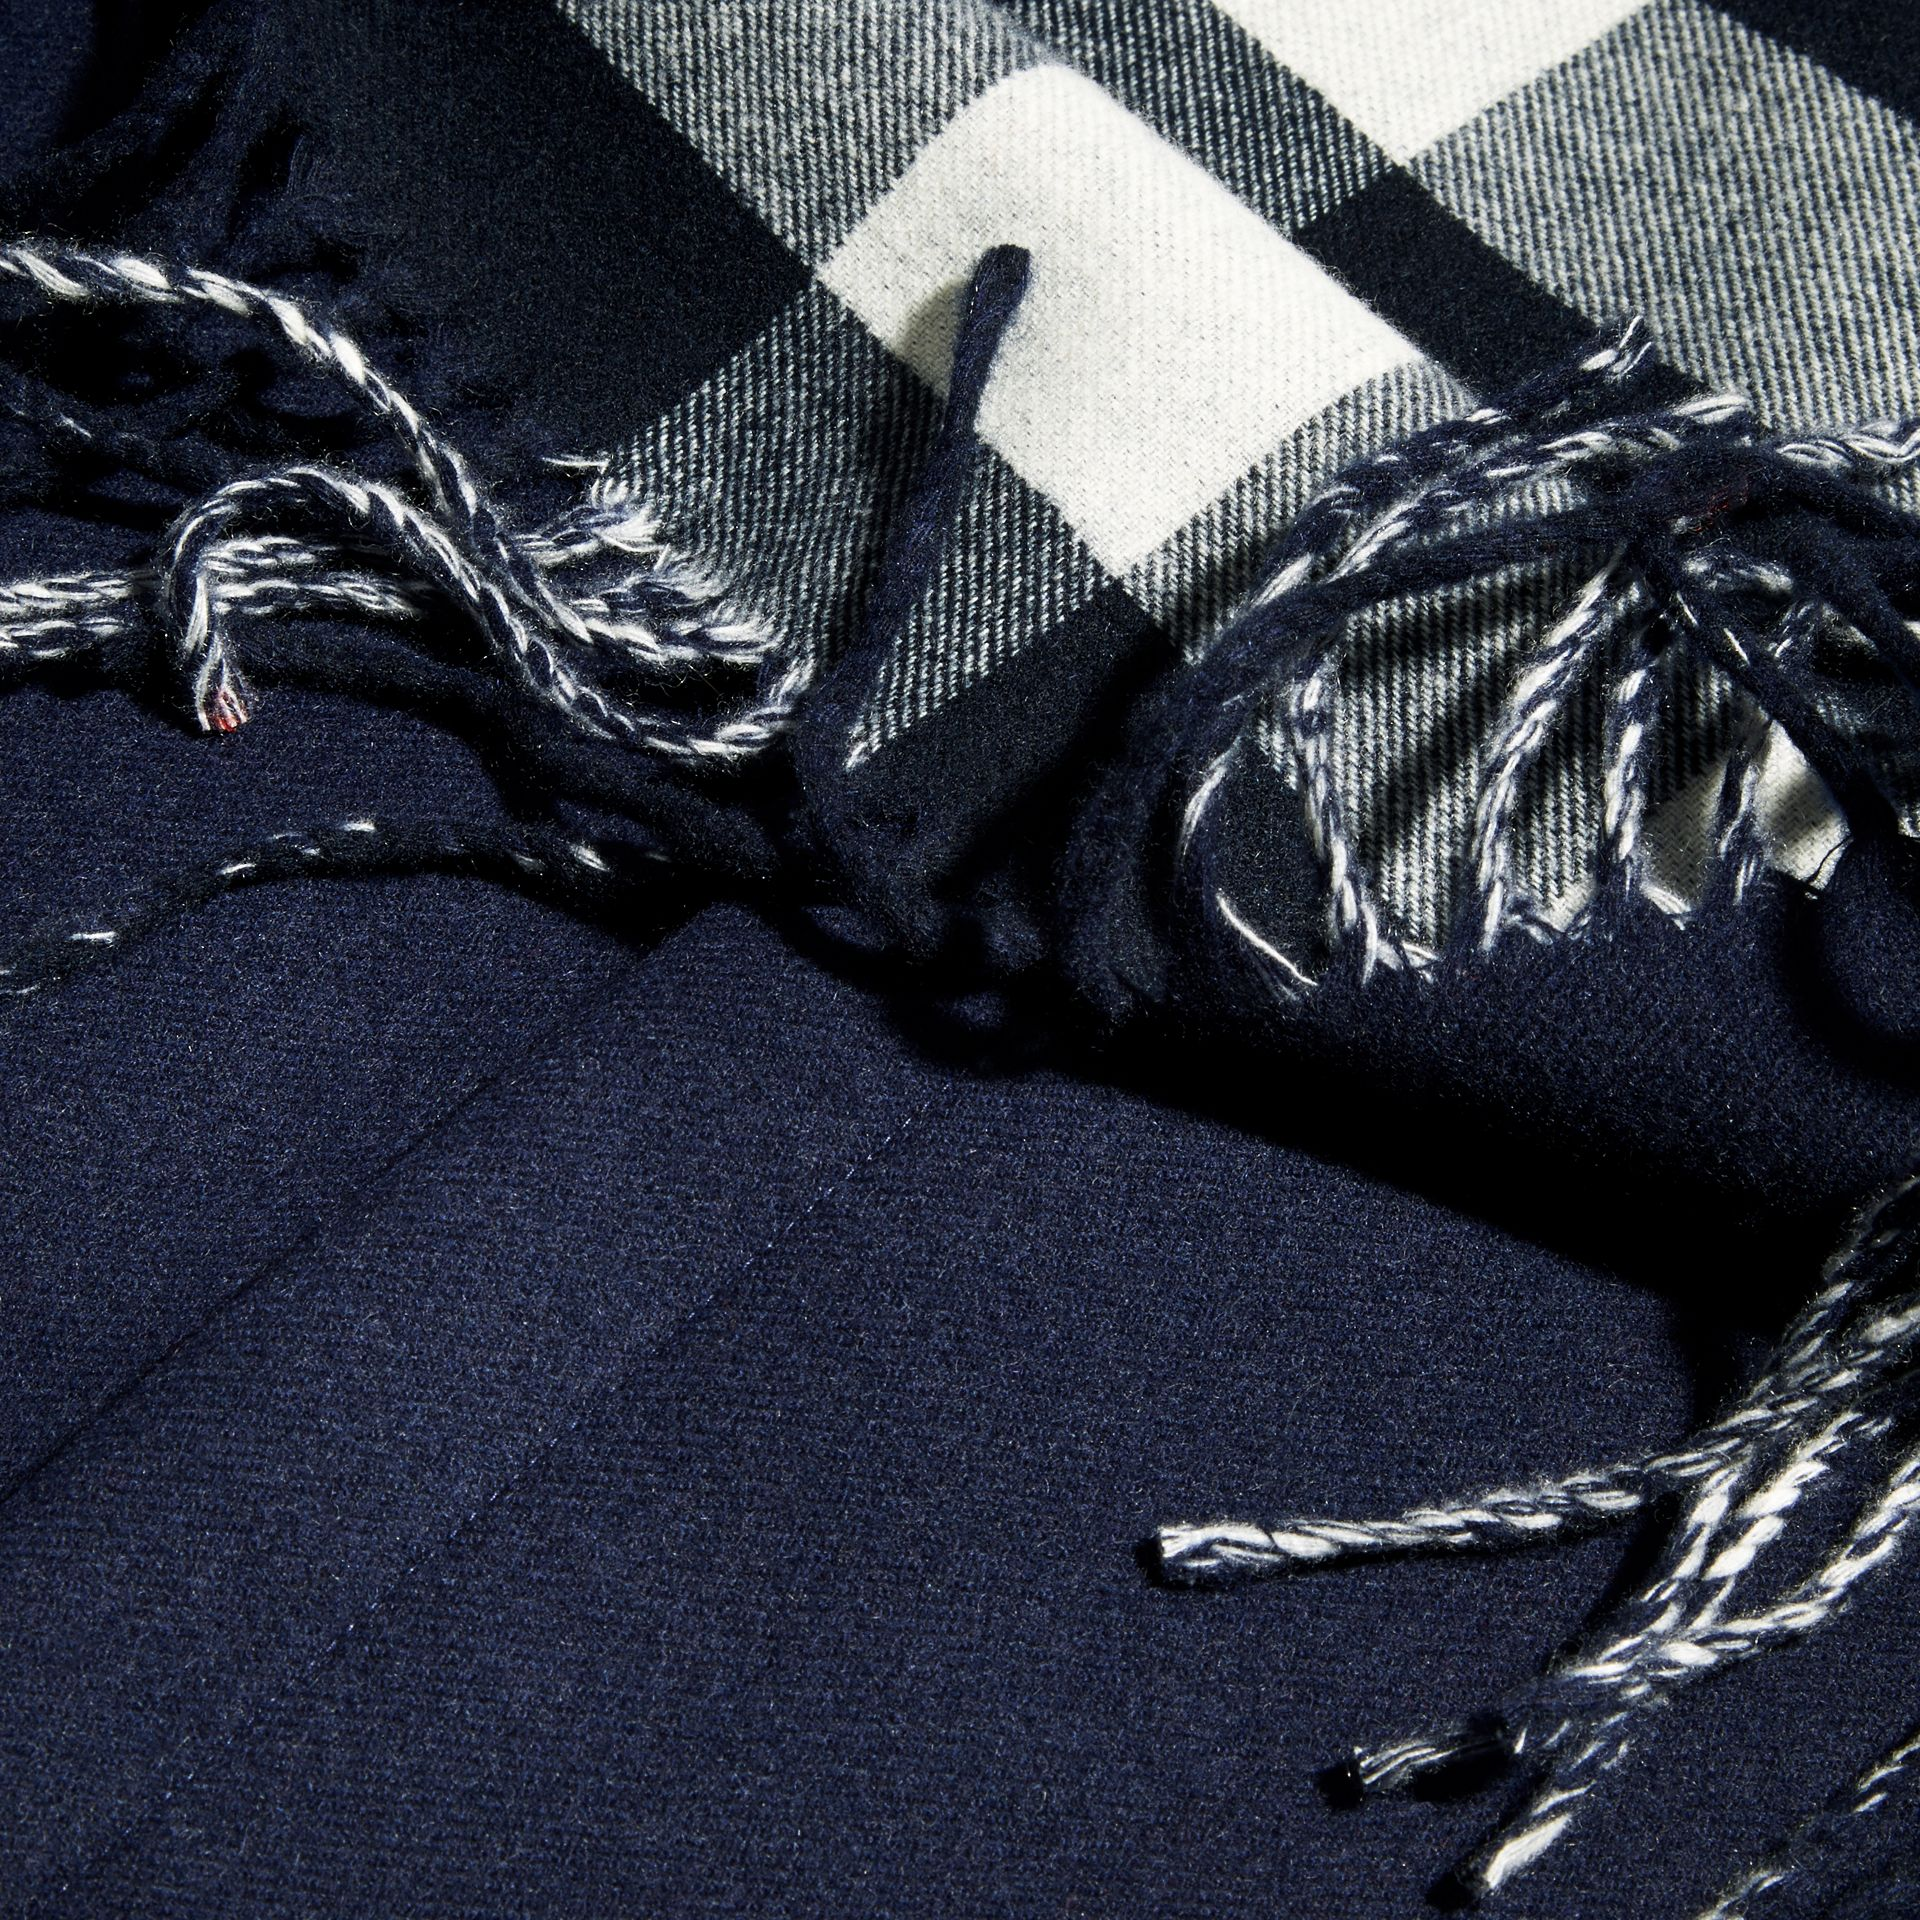 Fringed Cashmere Merino Wool Stole in Navy/indigo Blue - gallery image 2